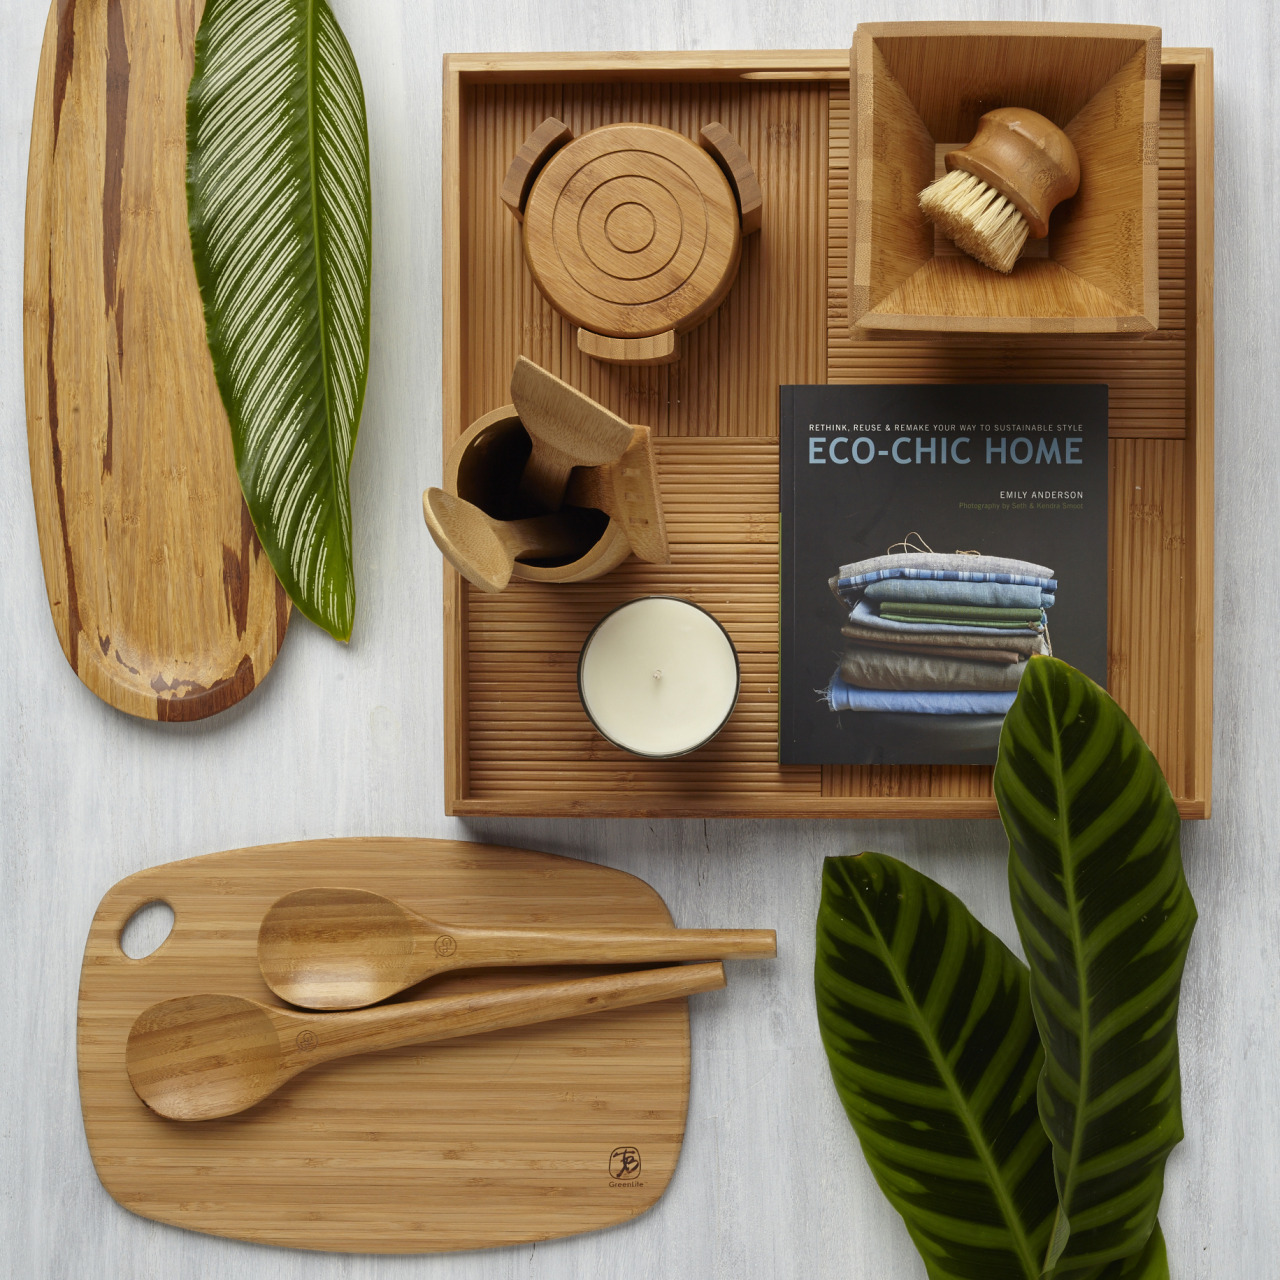 Eco Chic Sustainable bamboo kitchenware? Eco-friendly and so chic. #ecochic #earthday #recycle #sustainability